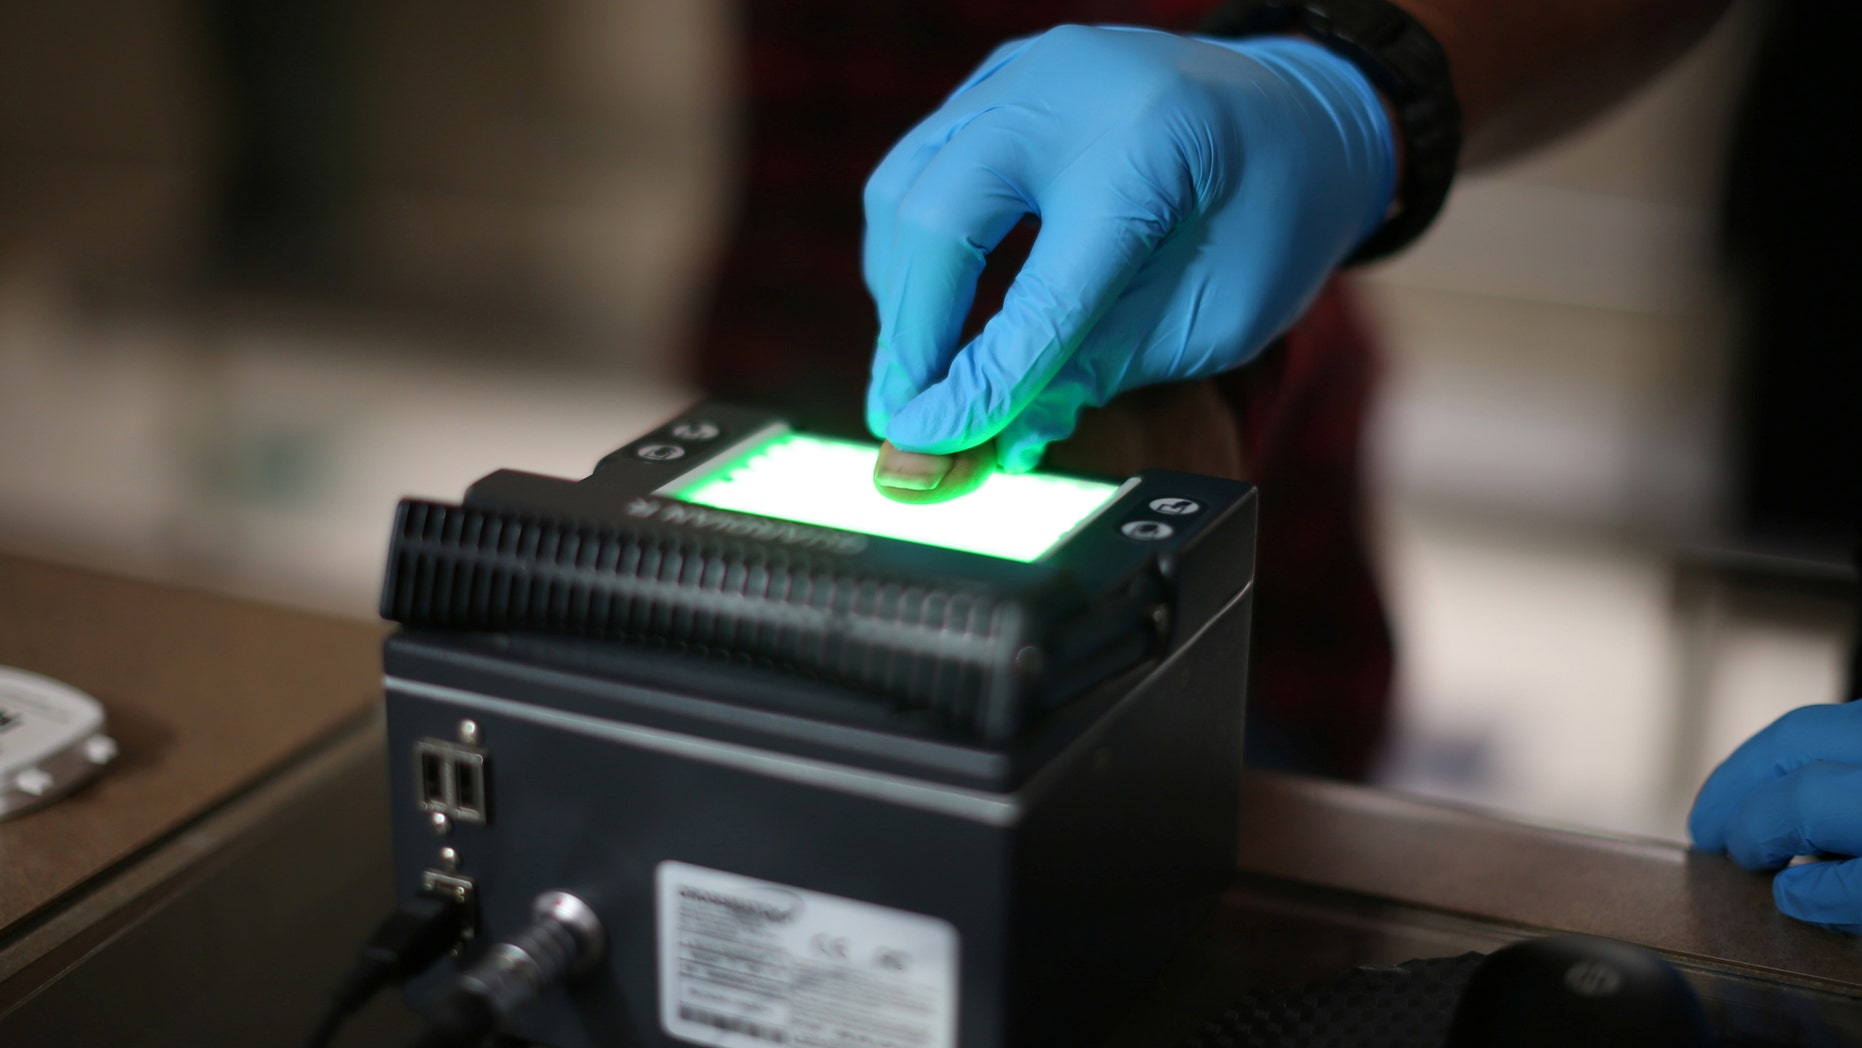 File photo: Mexican national Adalberto Magana-Gonzalez, 44, has his fingerprints taken after being taken into custody by a U.S. Immigration and Customs Enforcement's (ICE) Fugitive Operations team in Santa Ana, California, U.S., May 11, 2017. (REUTERS/Lucy Nicholson)